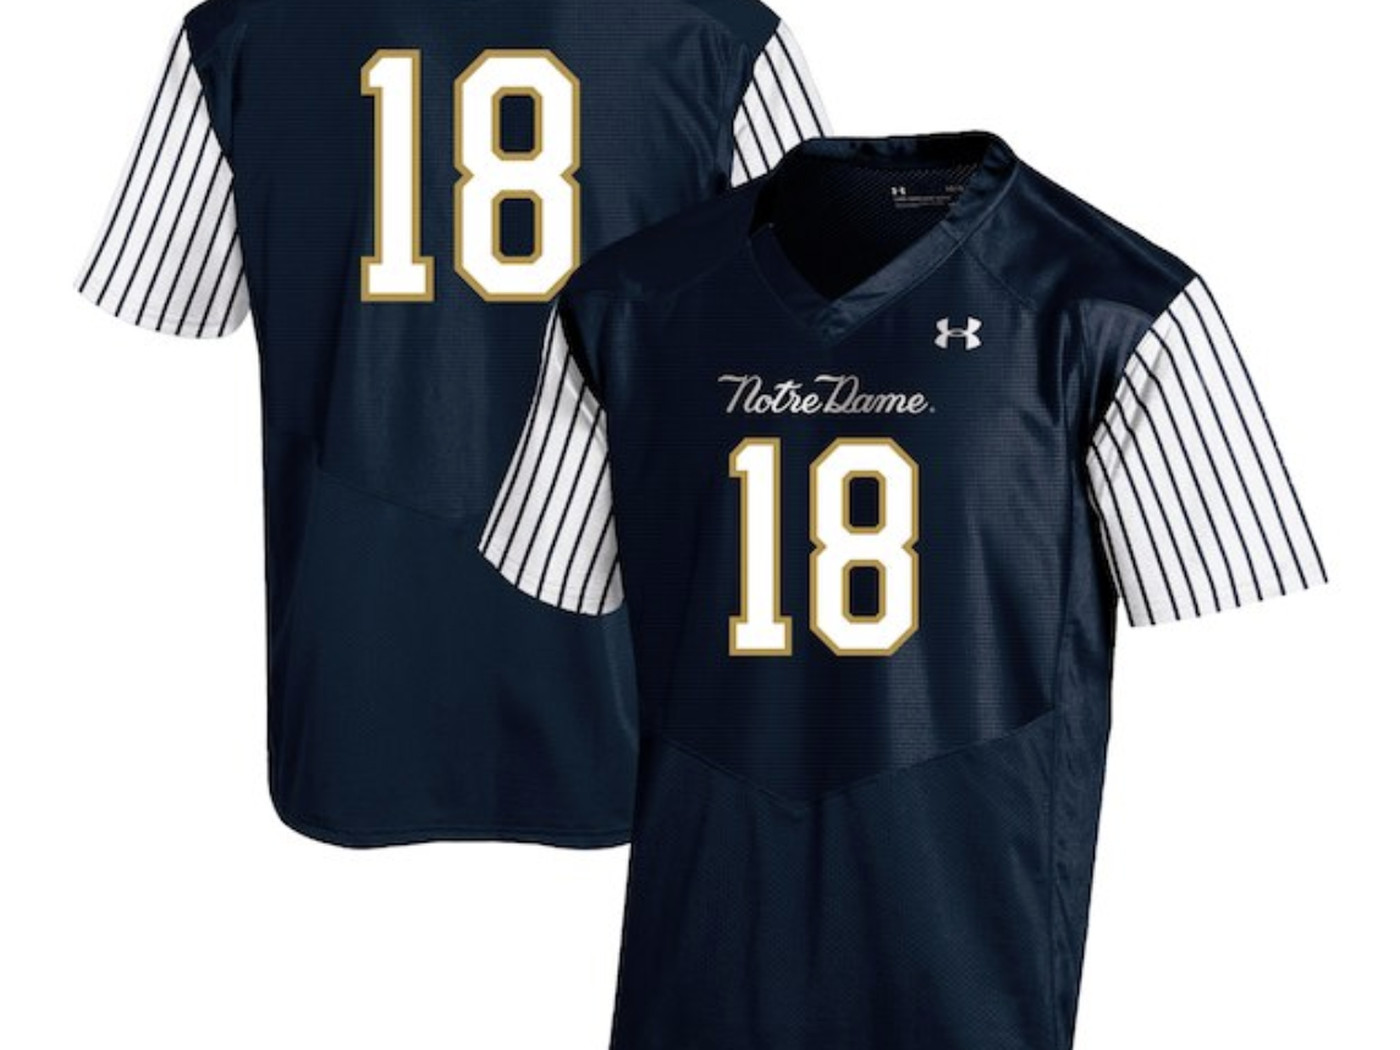 15c9e7c7e58 Notre Dame's Yankees-themed alternate uniforms are sure to be polarizing.  New ...